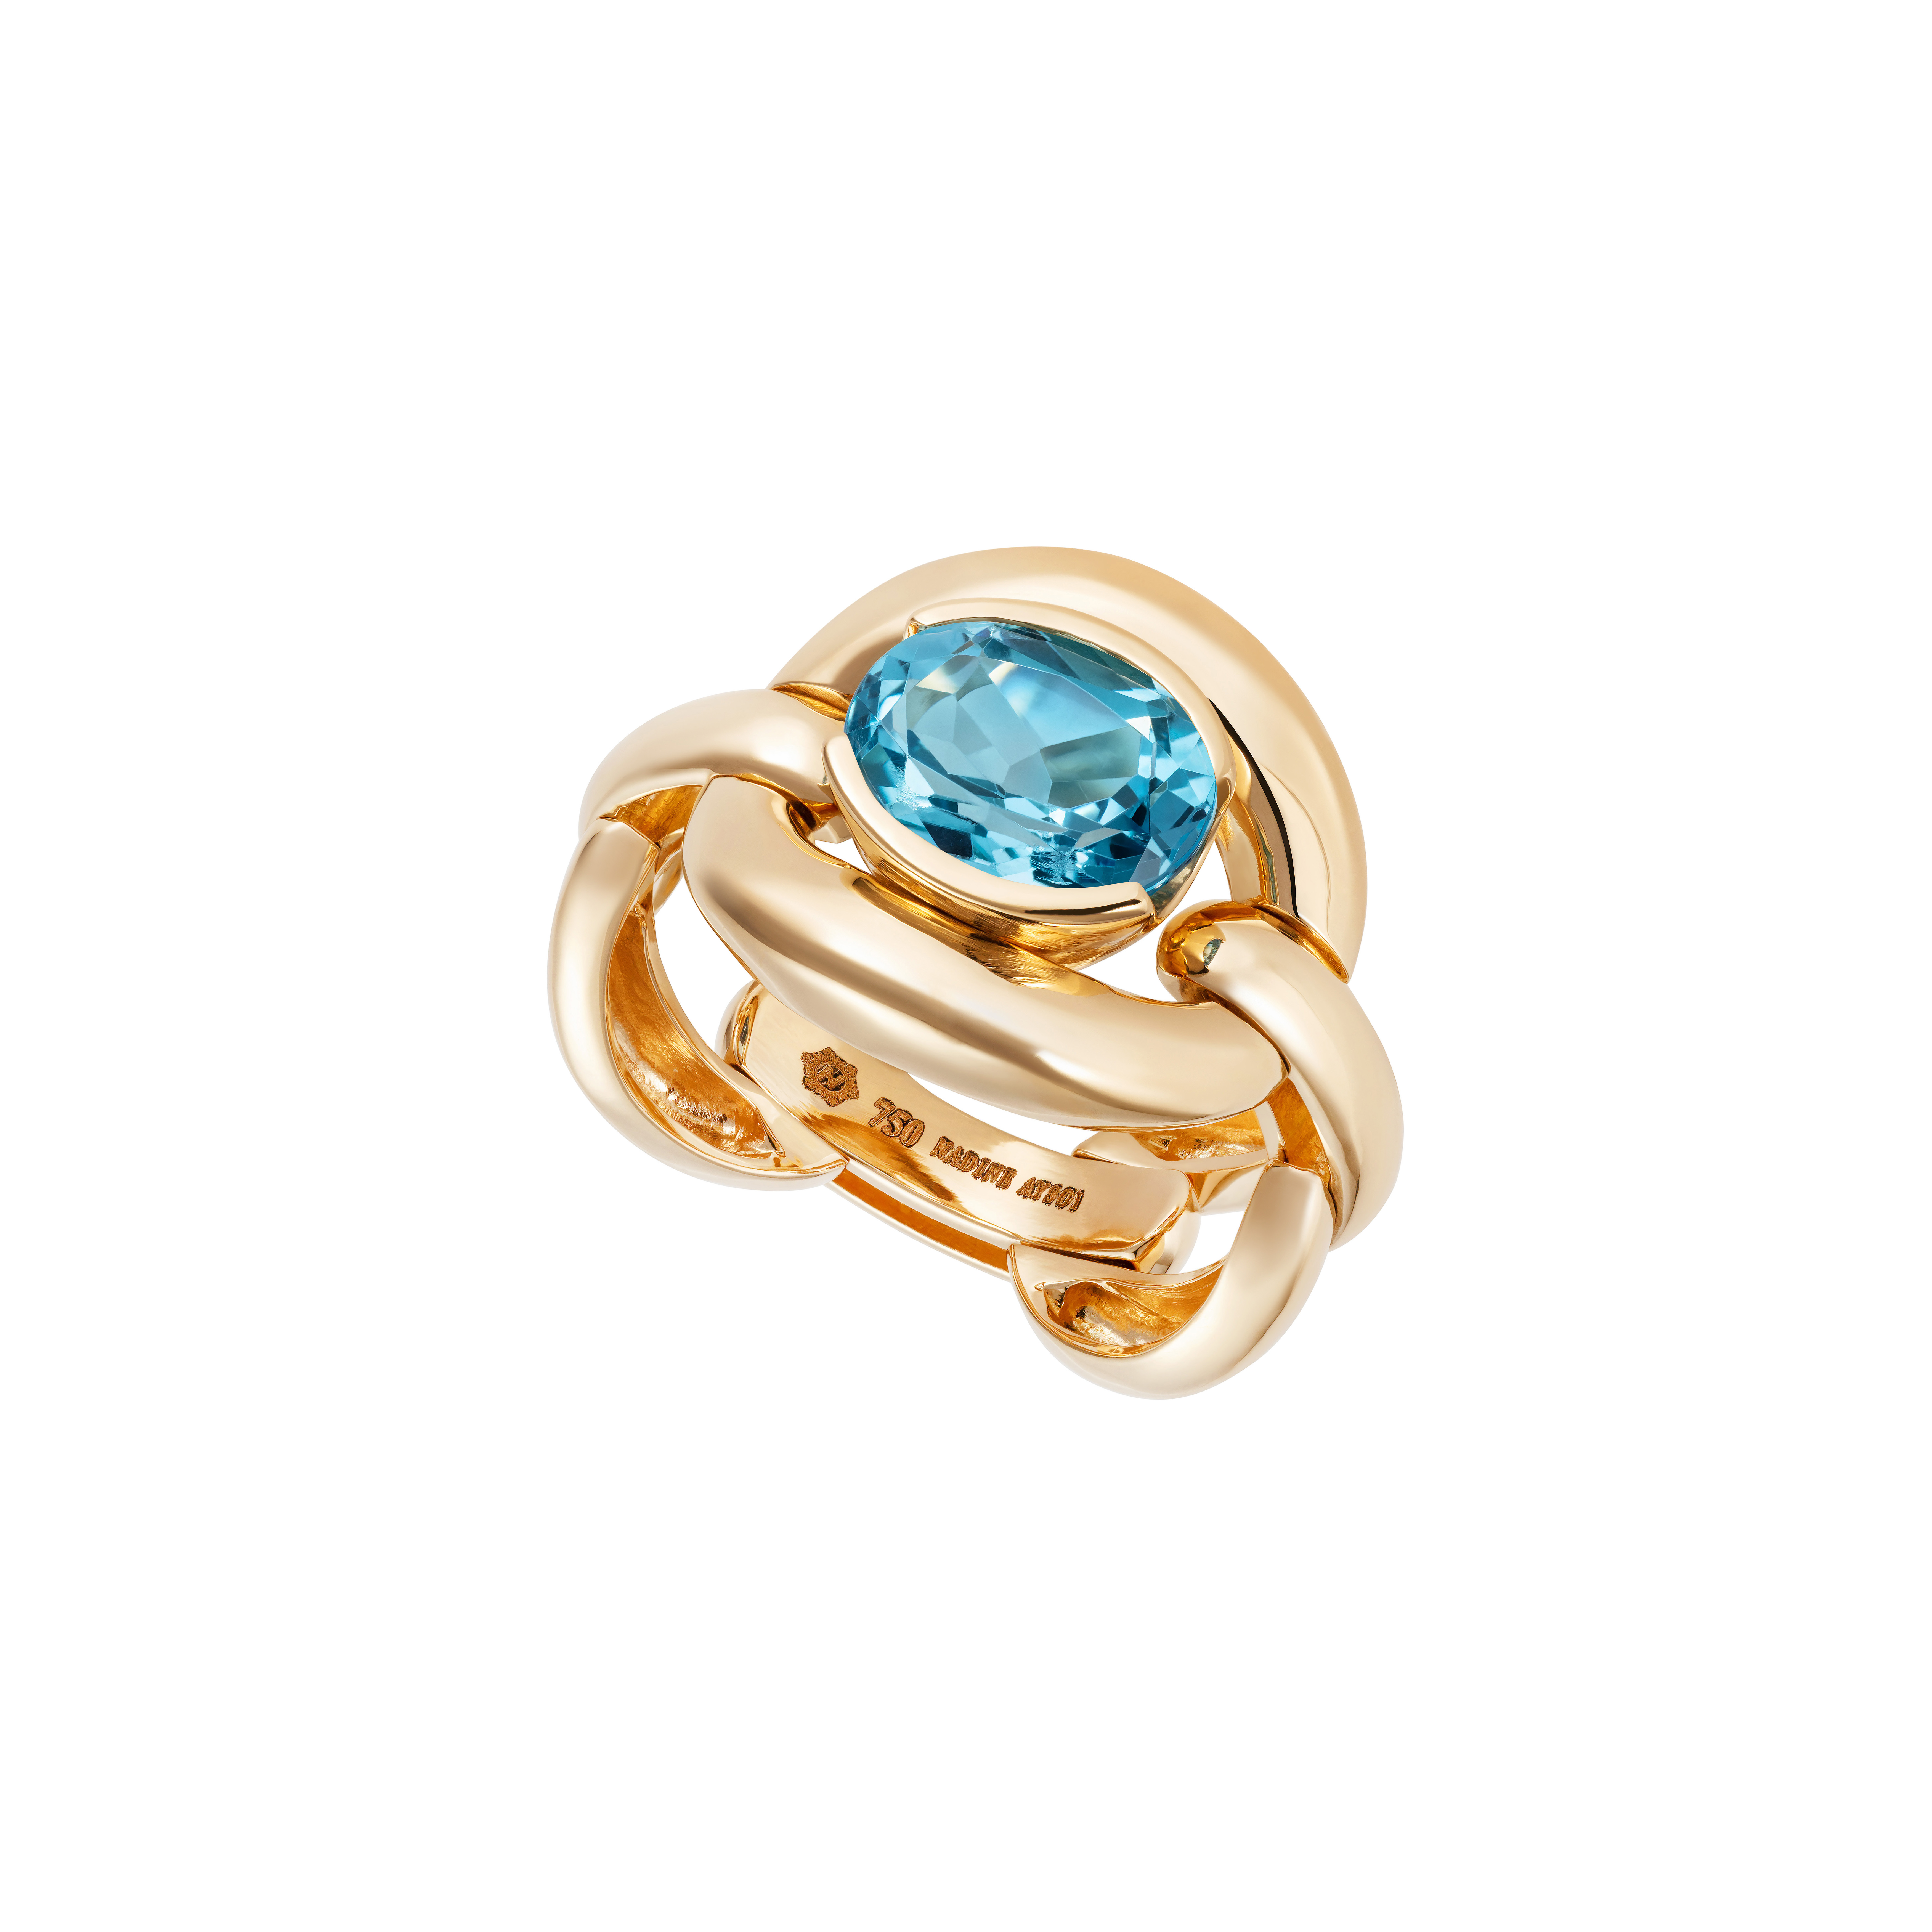 Blue Topaz Ring by Nadine Aysoy on curated-crowd.com